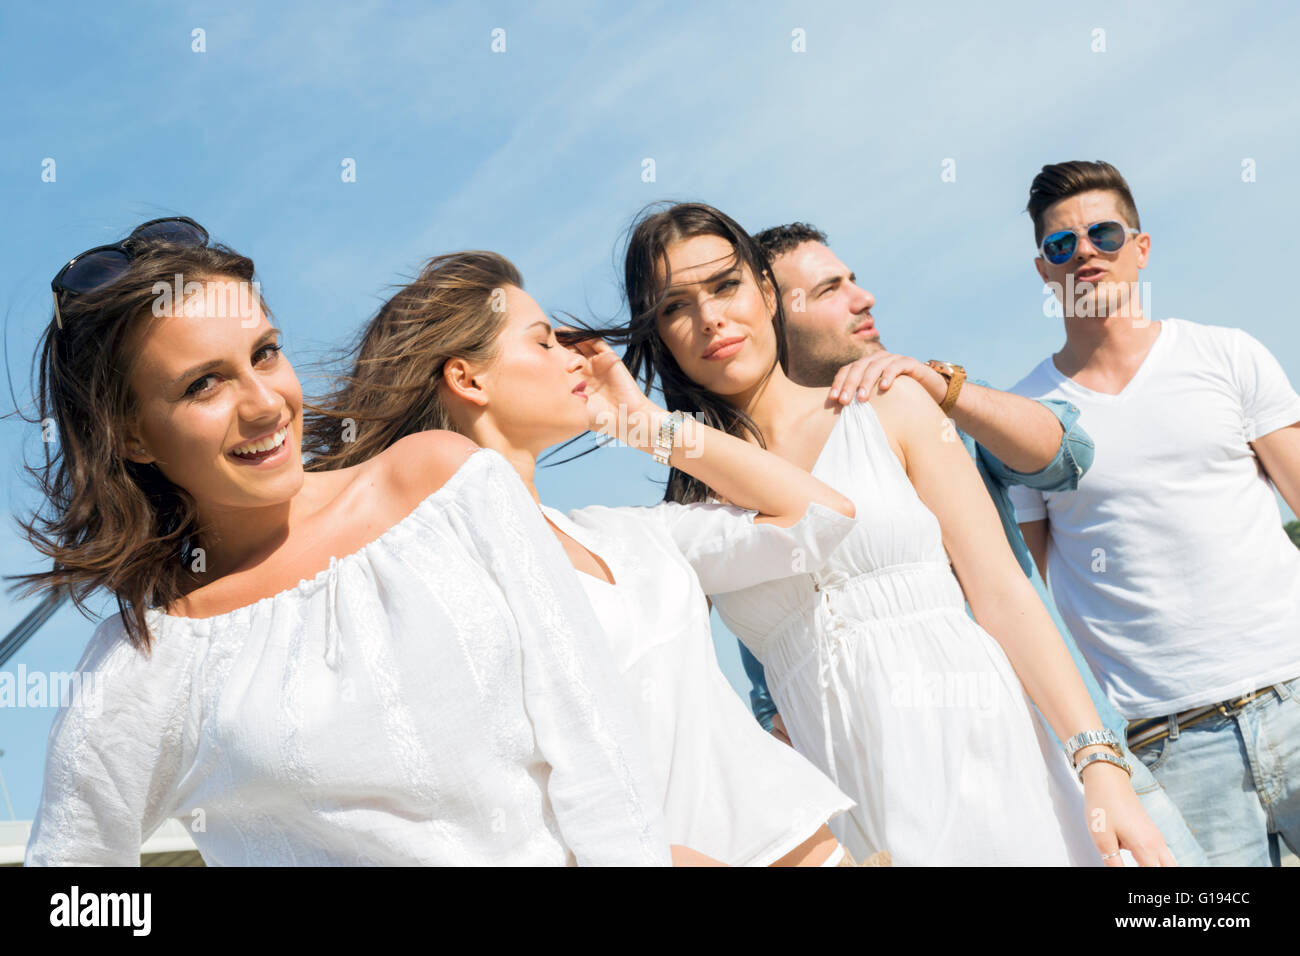 Young people on the beach posing with wind blowing their hair - Stock Image